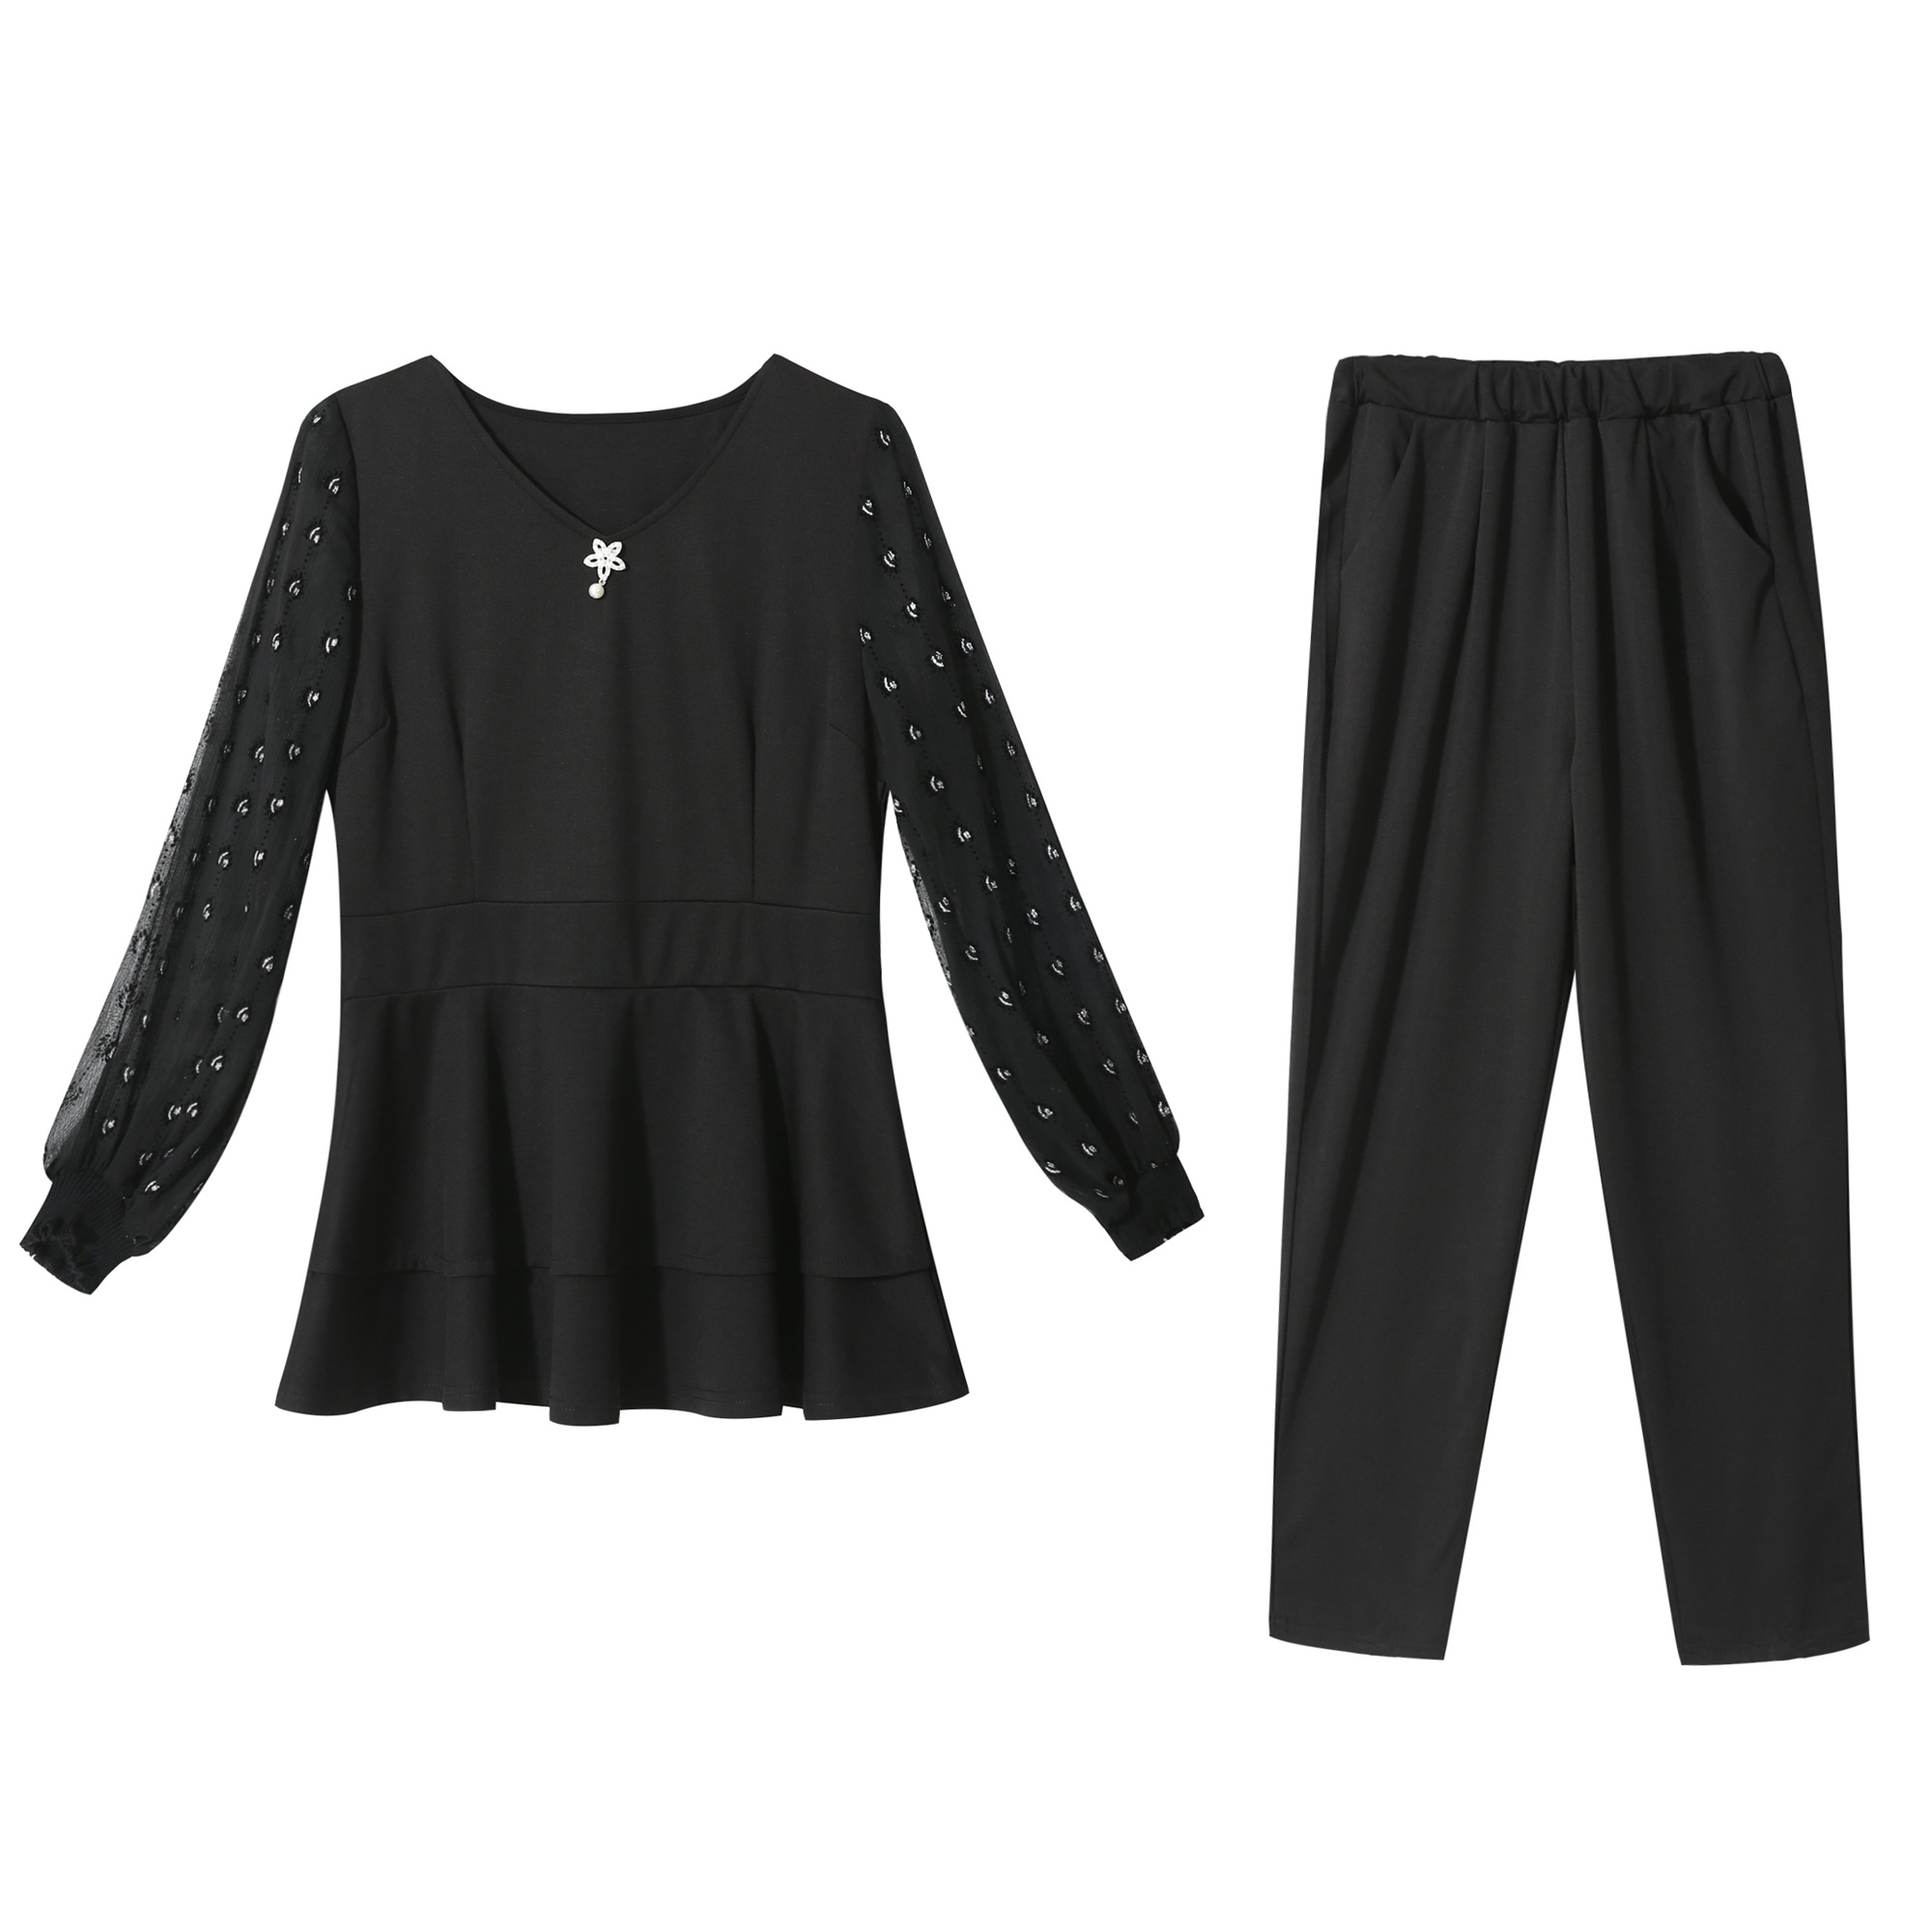 Black Plus size 2 piece set top and pants suits tracksuits women L 4XL 5XL outfit sportswear fitness co ord set large clothes in Women 39 s Sets from Women 39 s Clothing